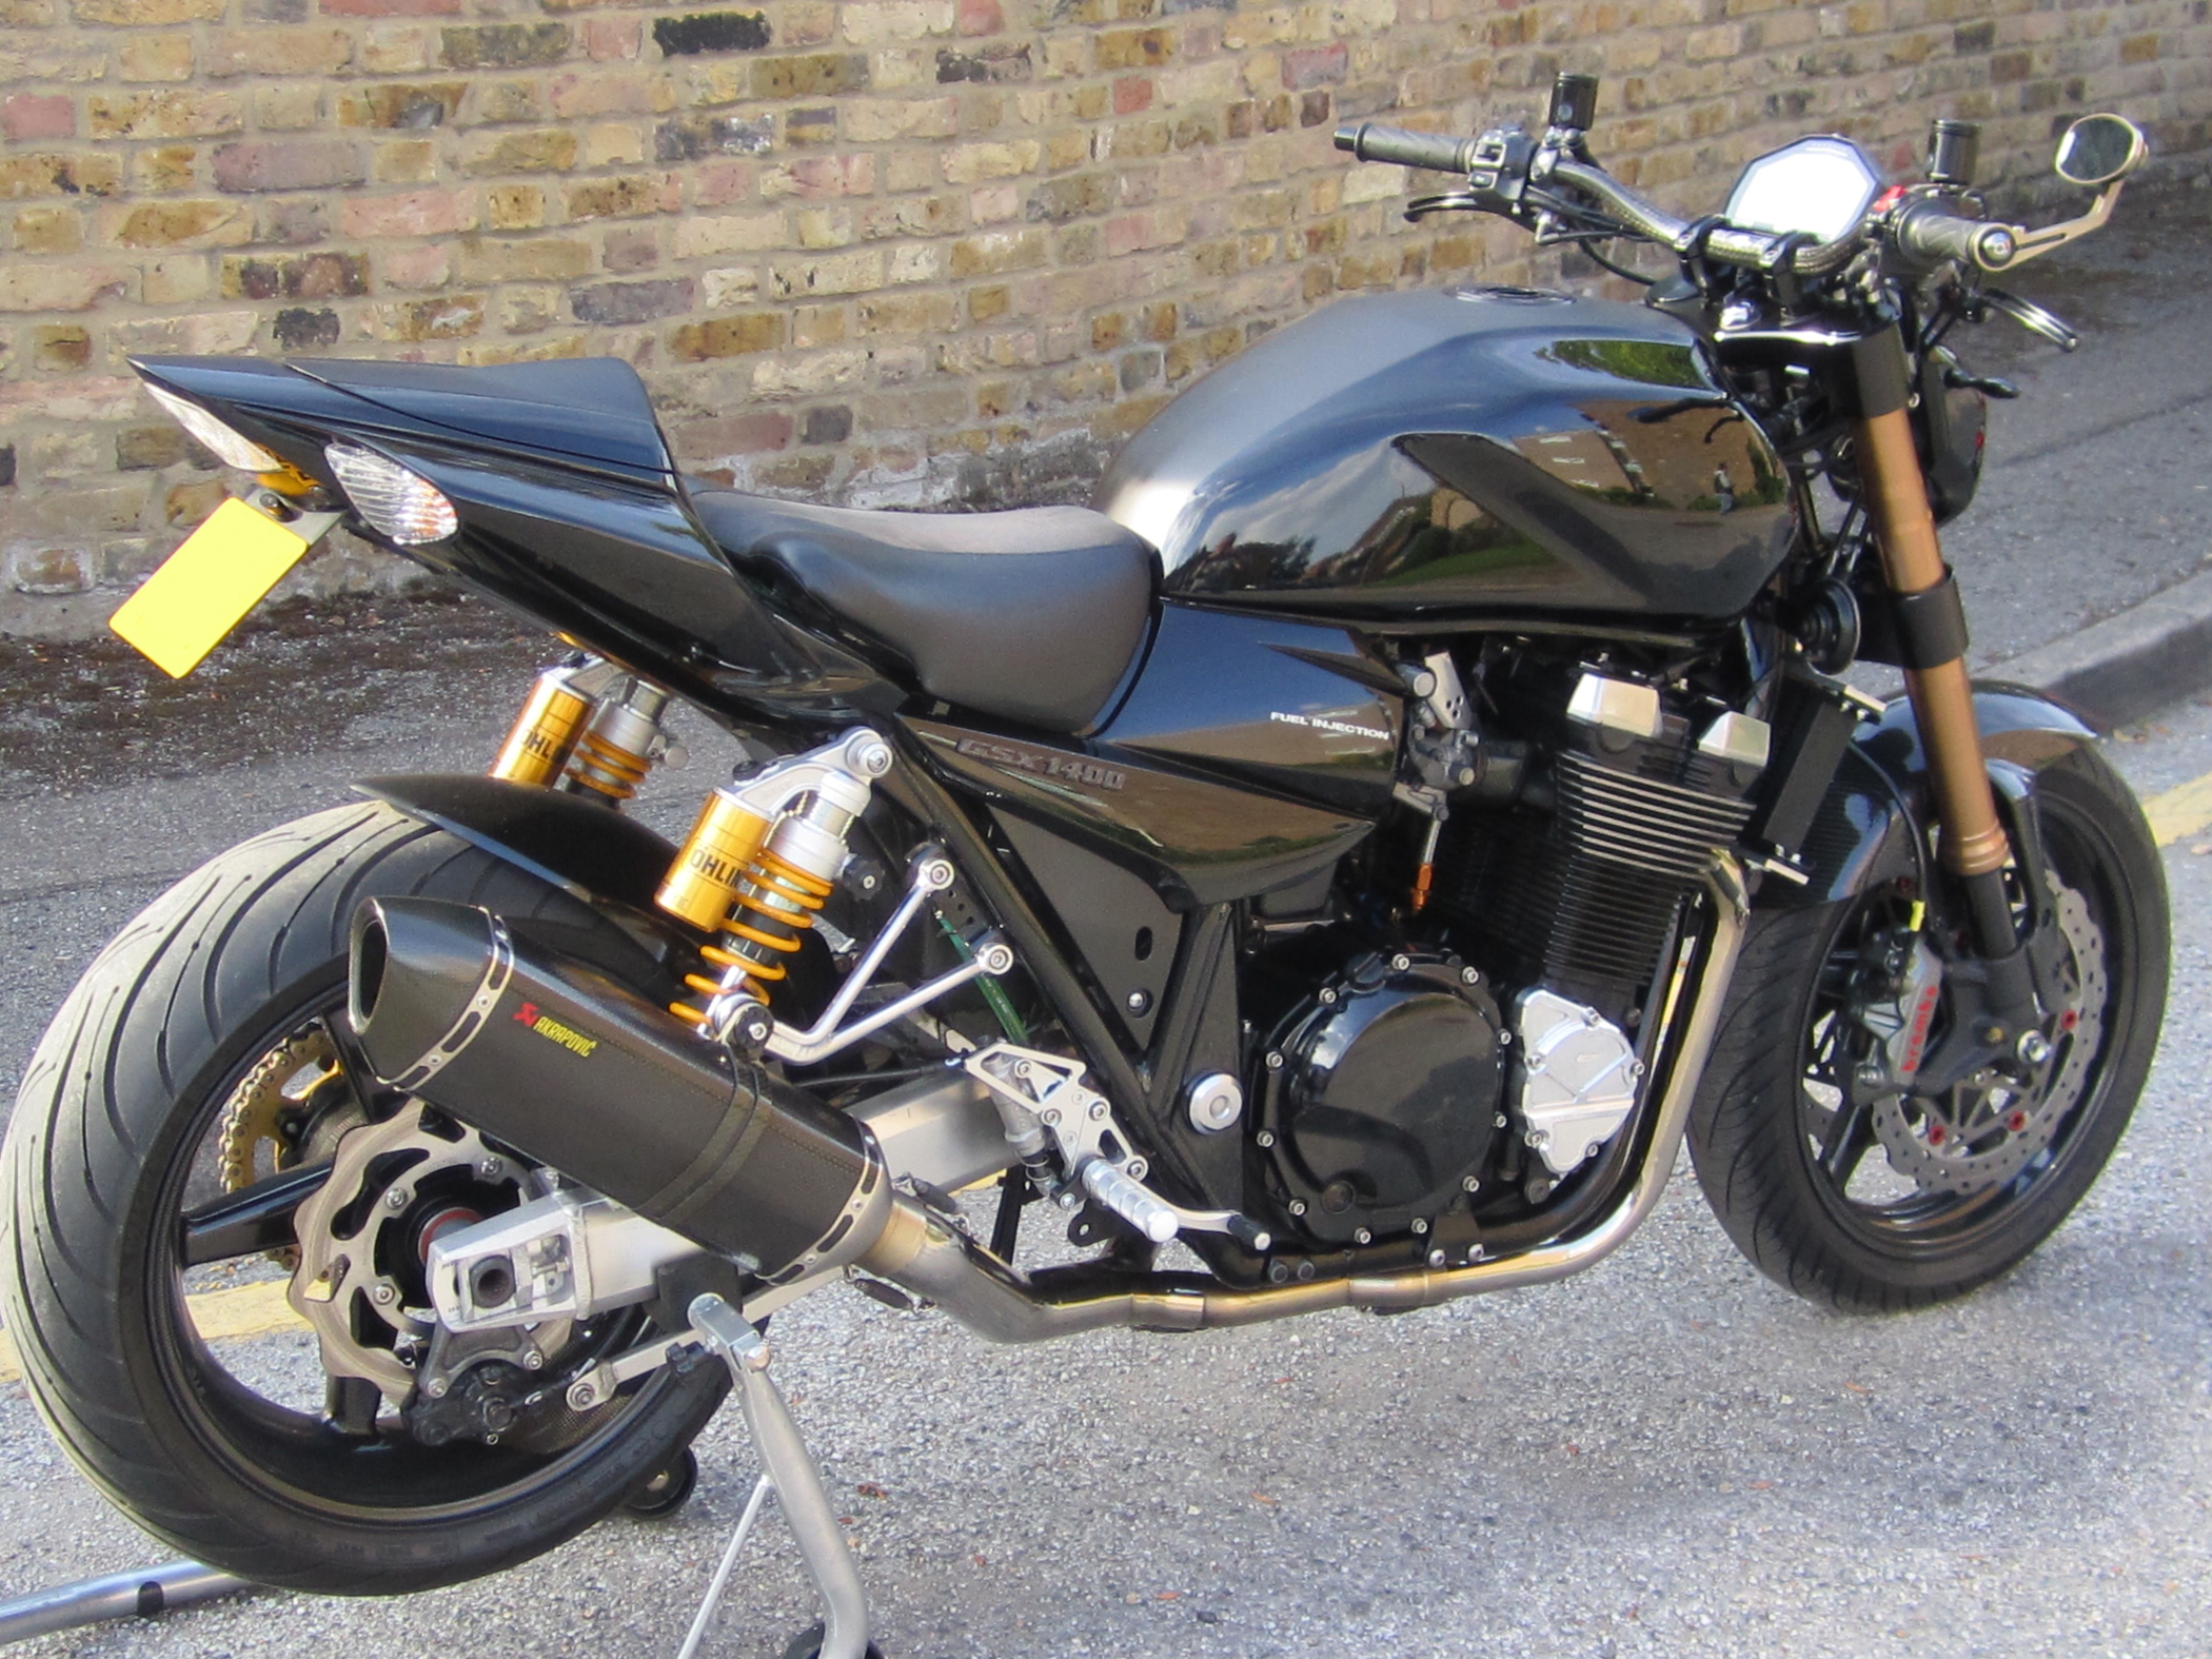 tim morris suzuki gsx 1400 motorcycles pinterest. Black Bedroom Furniture Sets. Home Design Ideas